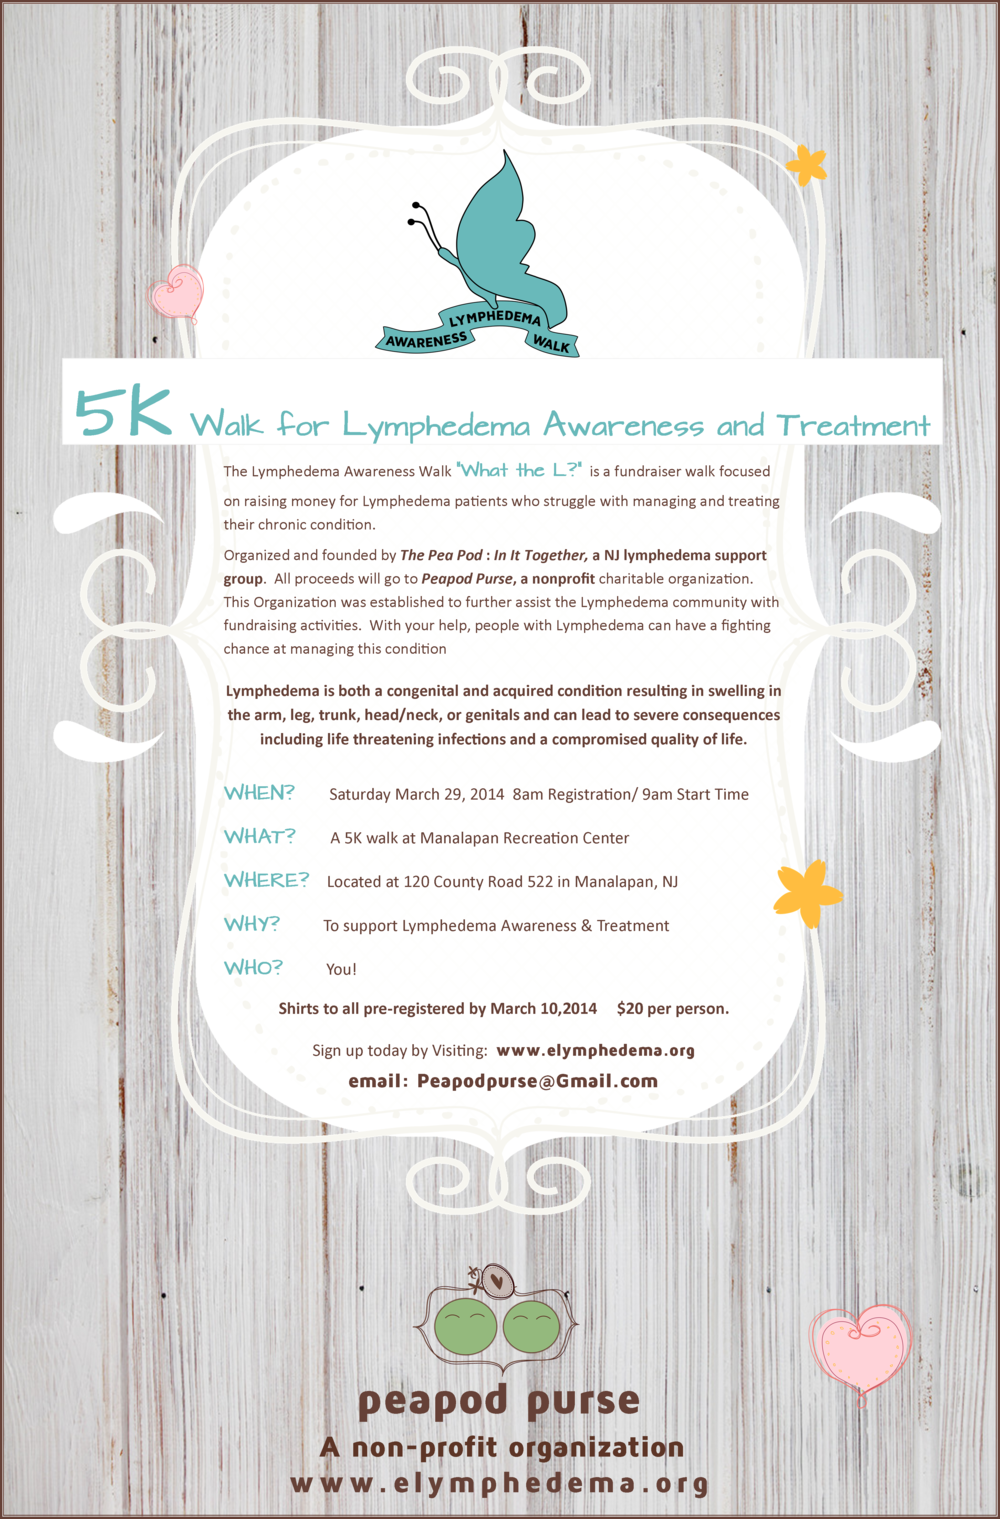 Lymphedema awareness walk, Breast Cancer Walk BCRL Breast Cancer Related Lymphedema